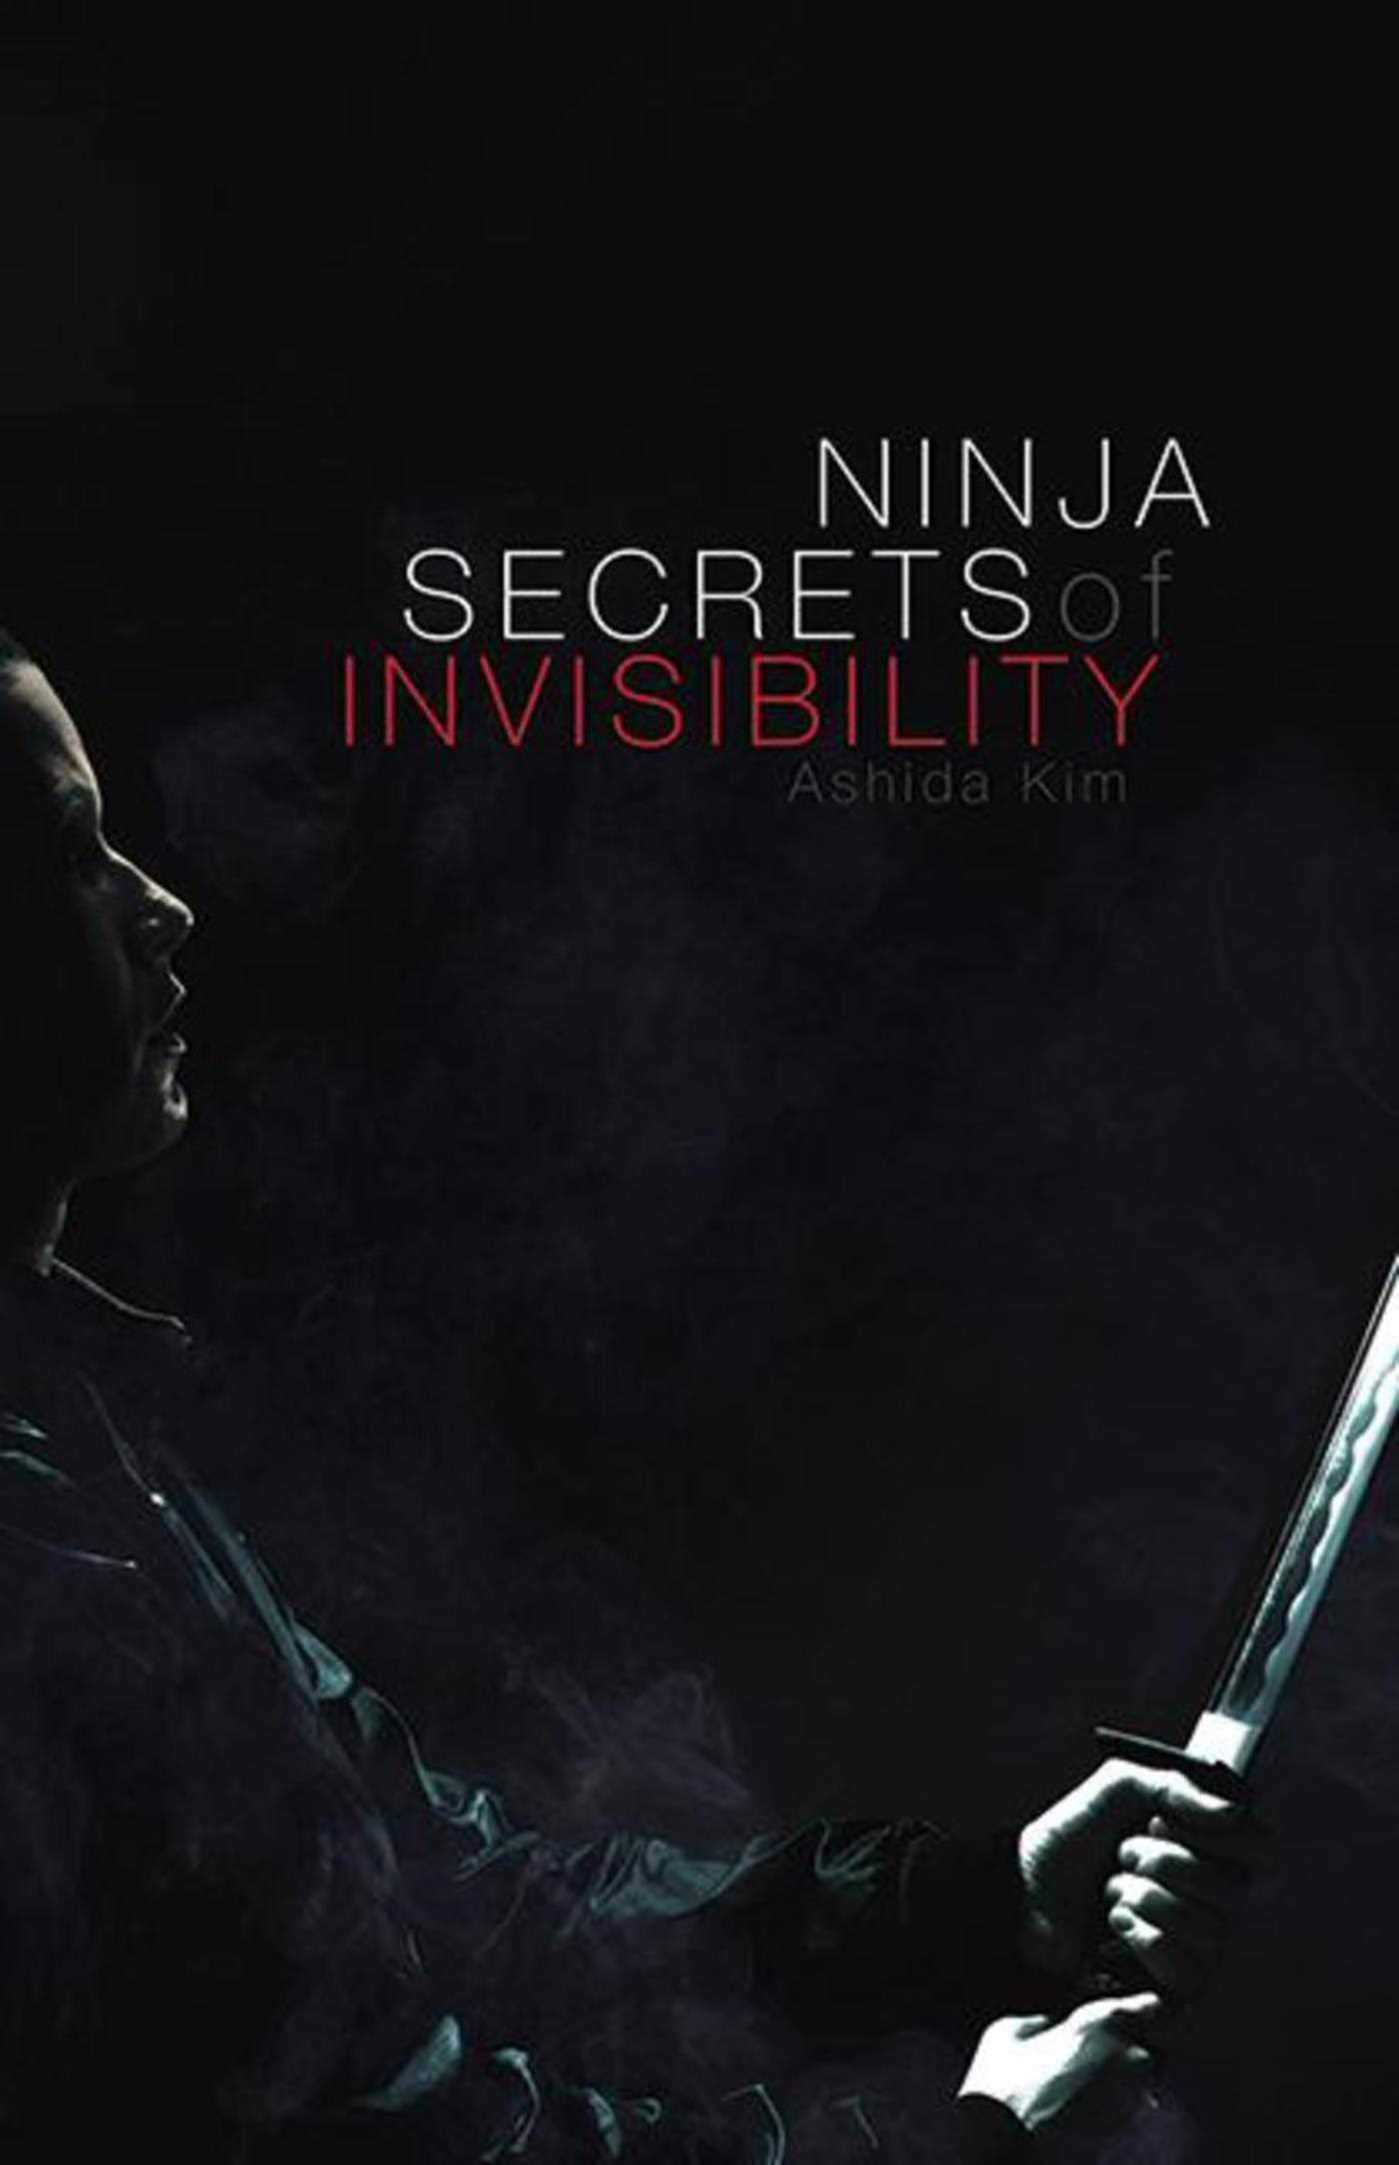 Ninja Secrets of Invisibility: Amazon.es: Ashida Kim: Libros ...